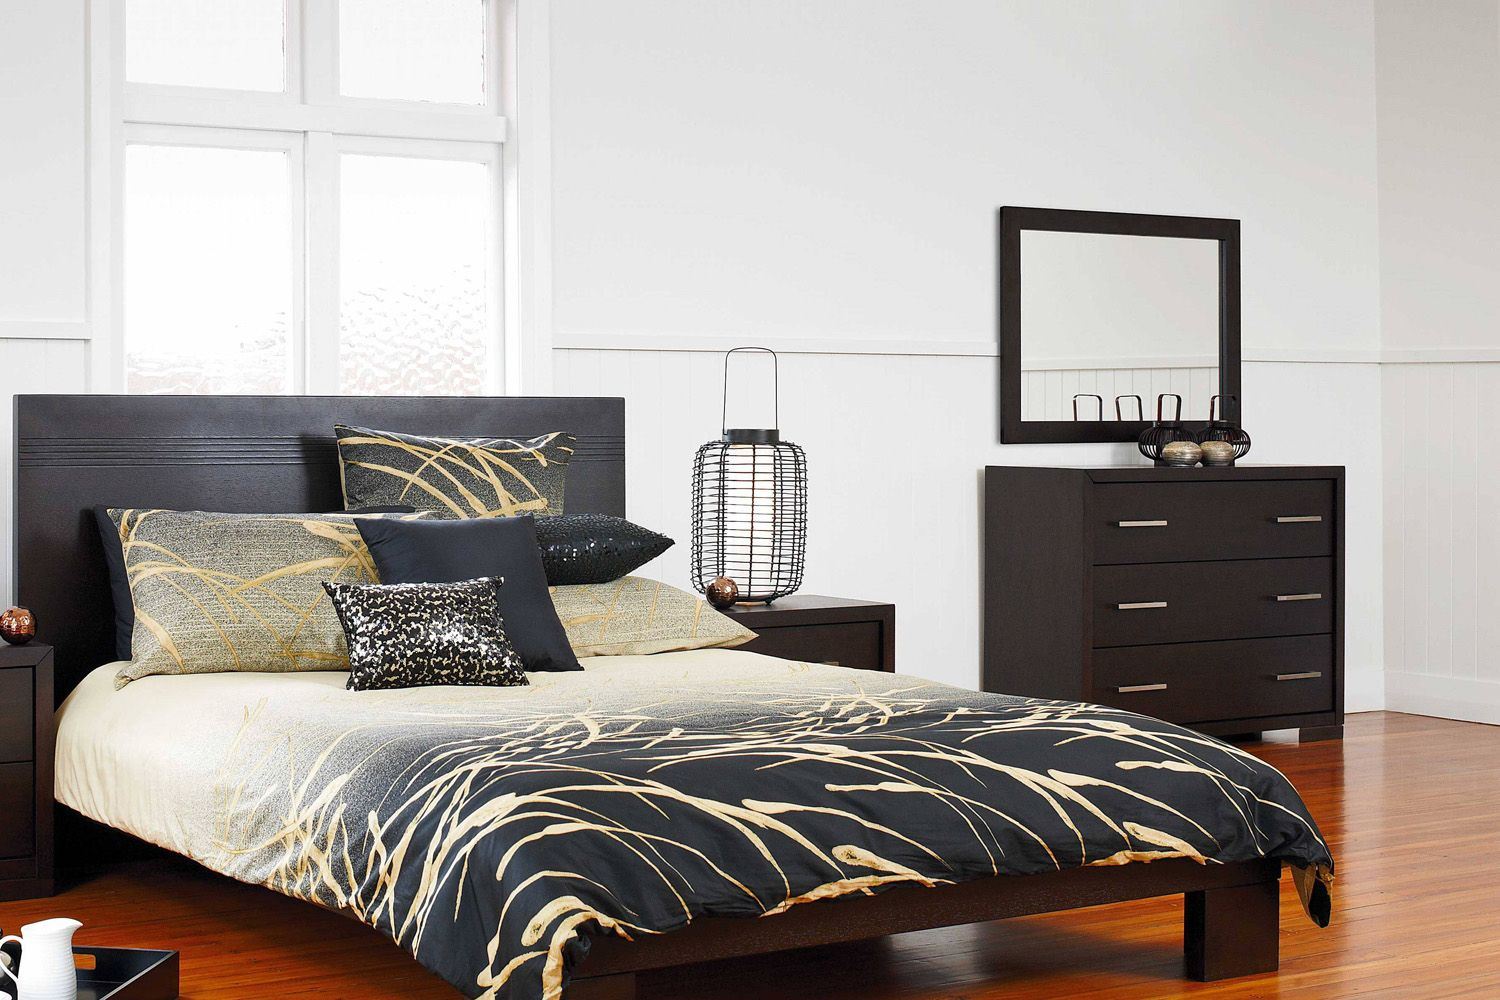 Mobel Bedroom Furniture Quater Wall Mirror By Haus Mobel Harvey Norman New Home